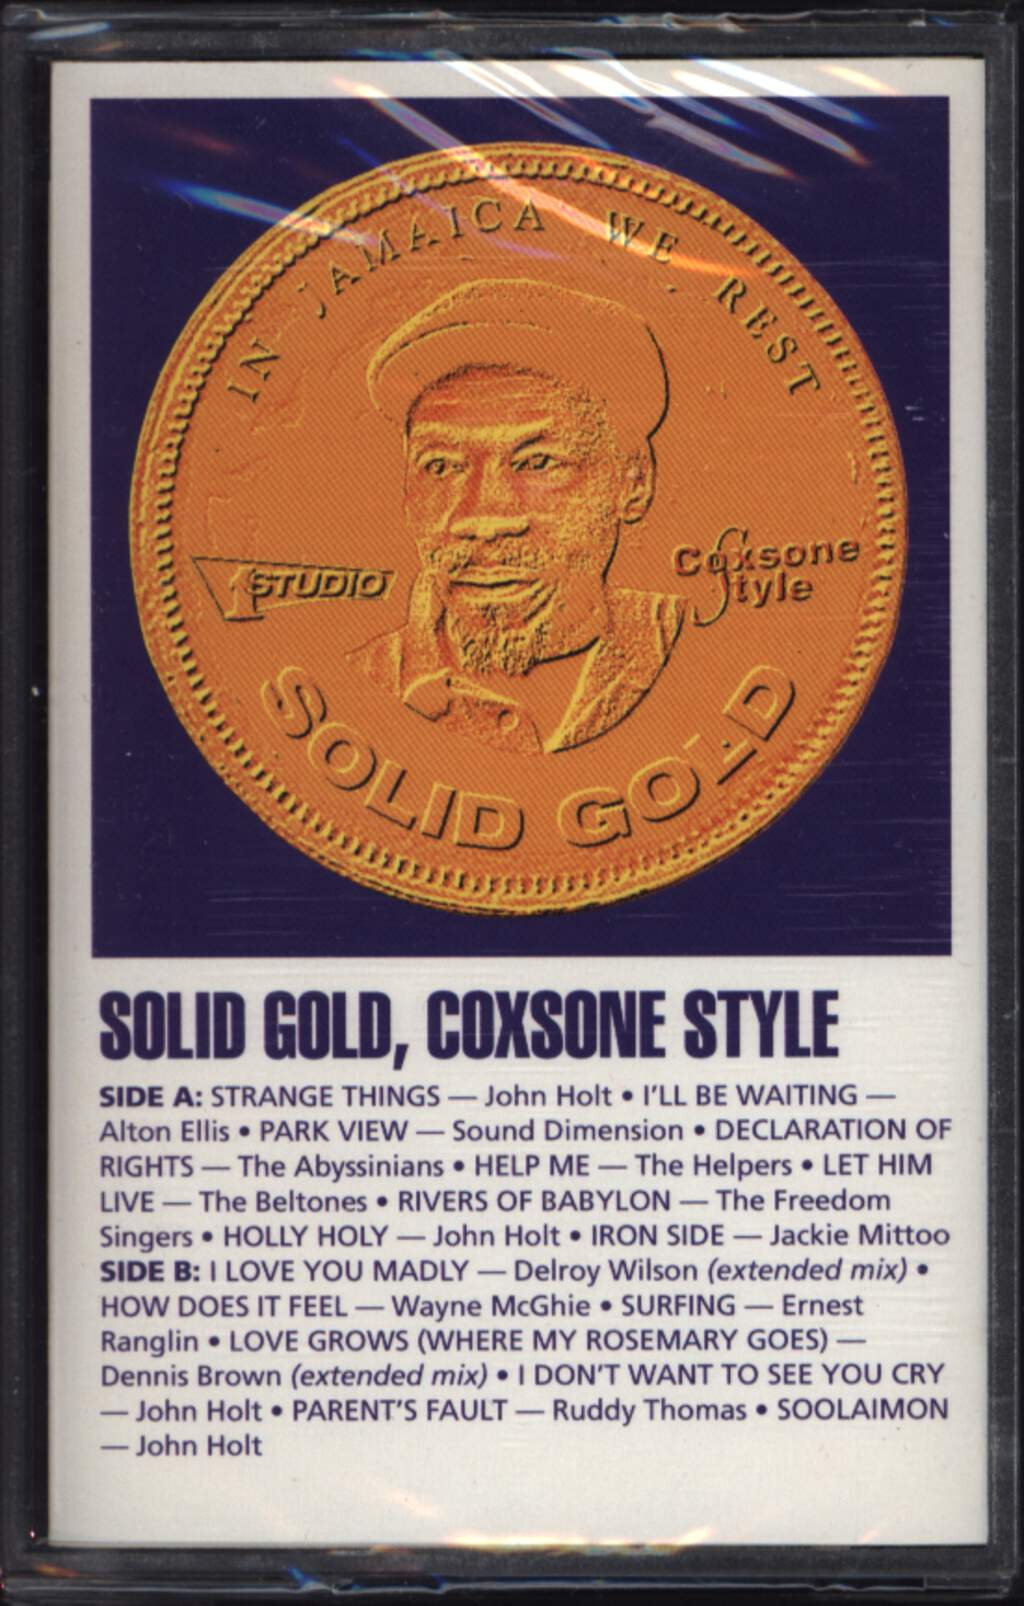 Various: Solid Gold, Coxsone Style, Compact Cassette